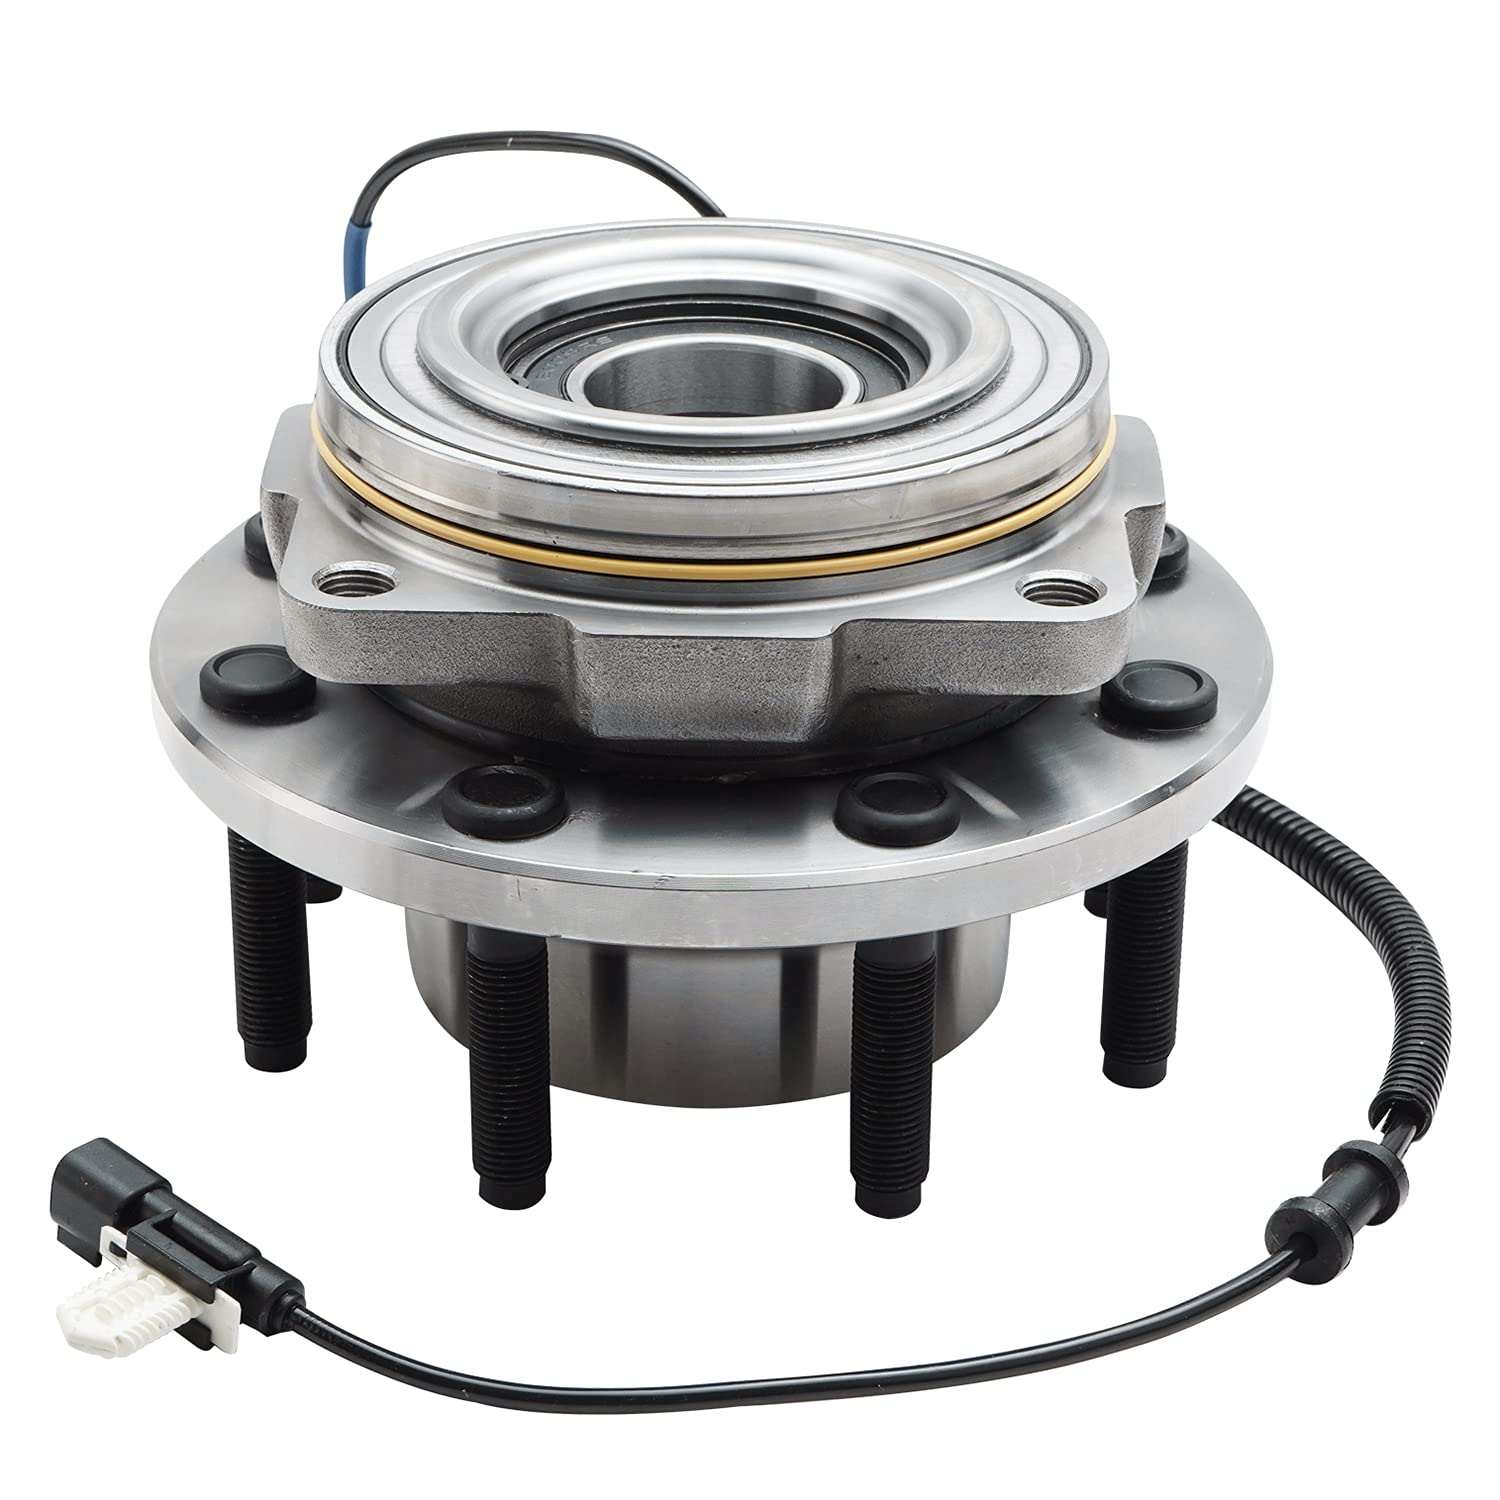 Detroit Axle - 4WD SRW Front Bearing 2 for Our shop most popular Wheel Replacement Hub outlet